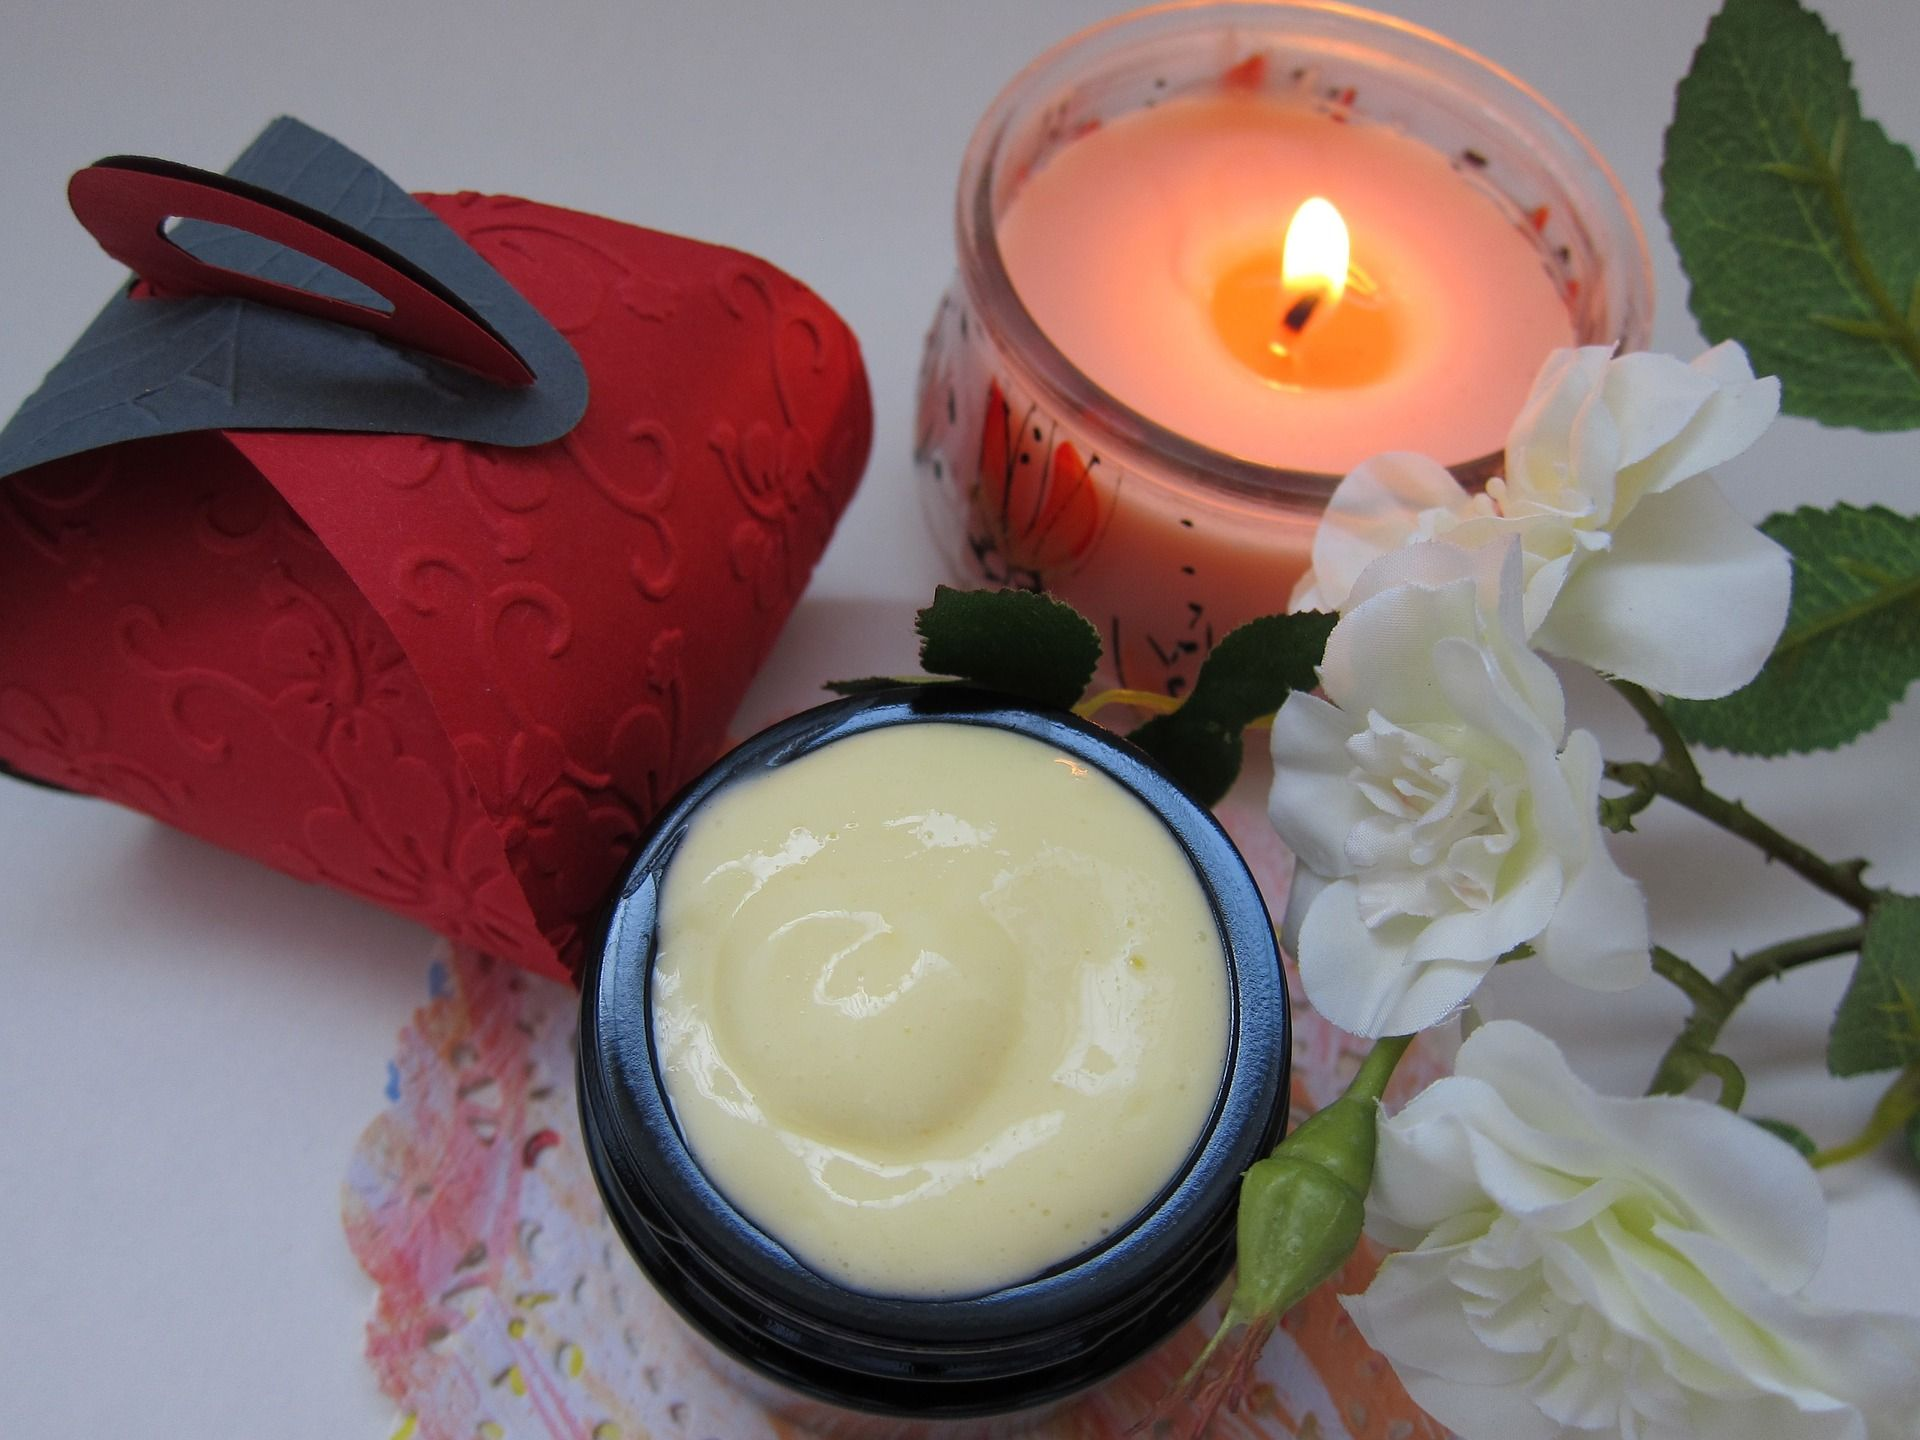 How to Use Body Butter